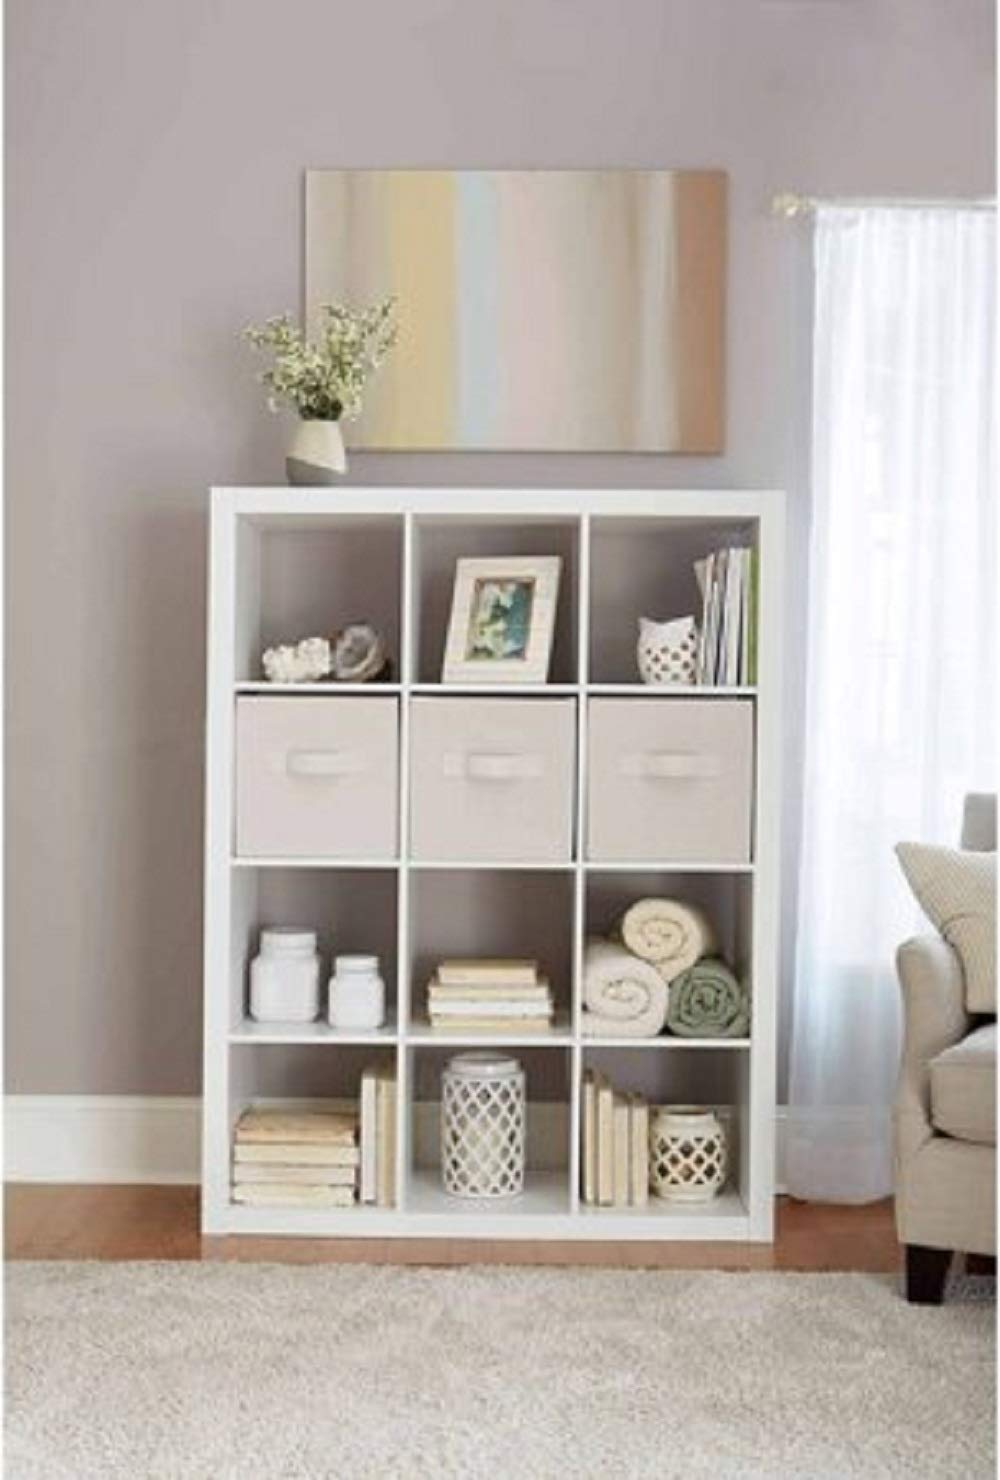 Better Homes and Gardens.. Bookshelf Square Storage Cabinet 4-Cube Organizer Weathered White, 4-Cube White, 12-Cube